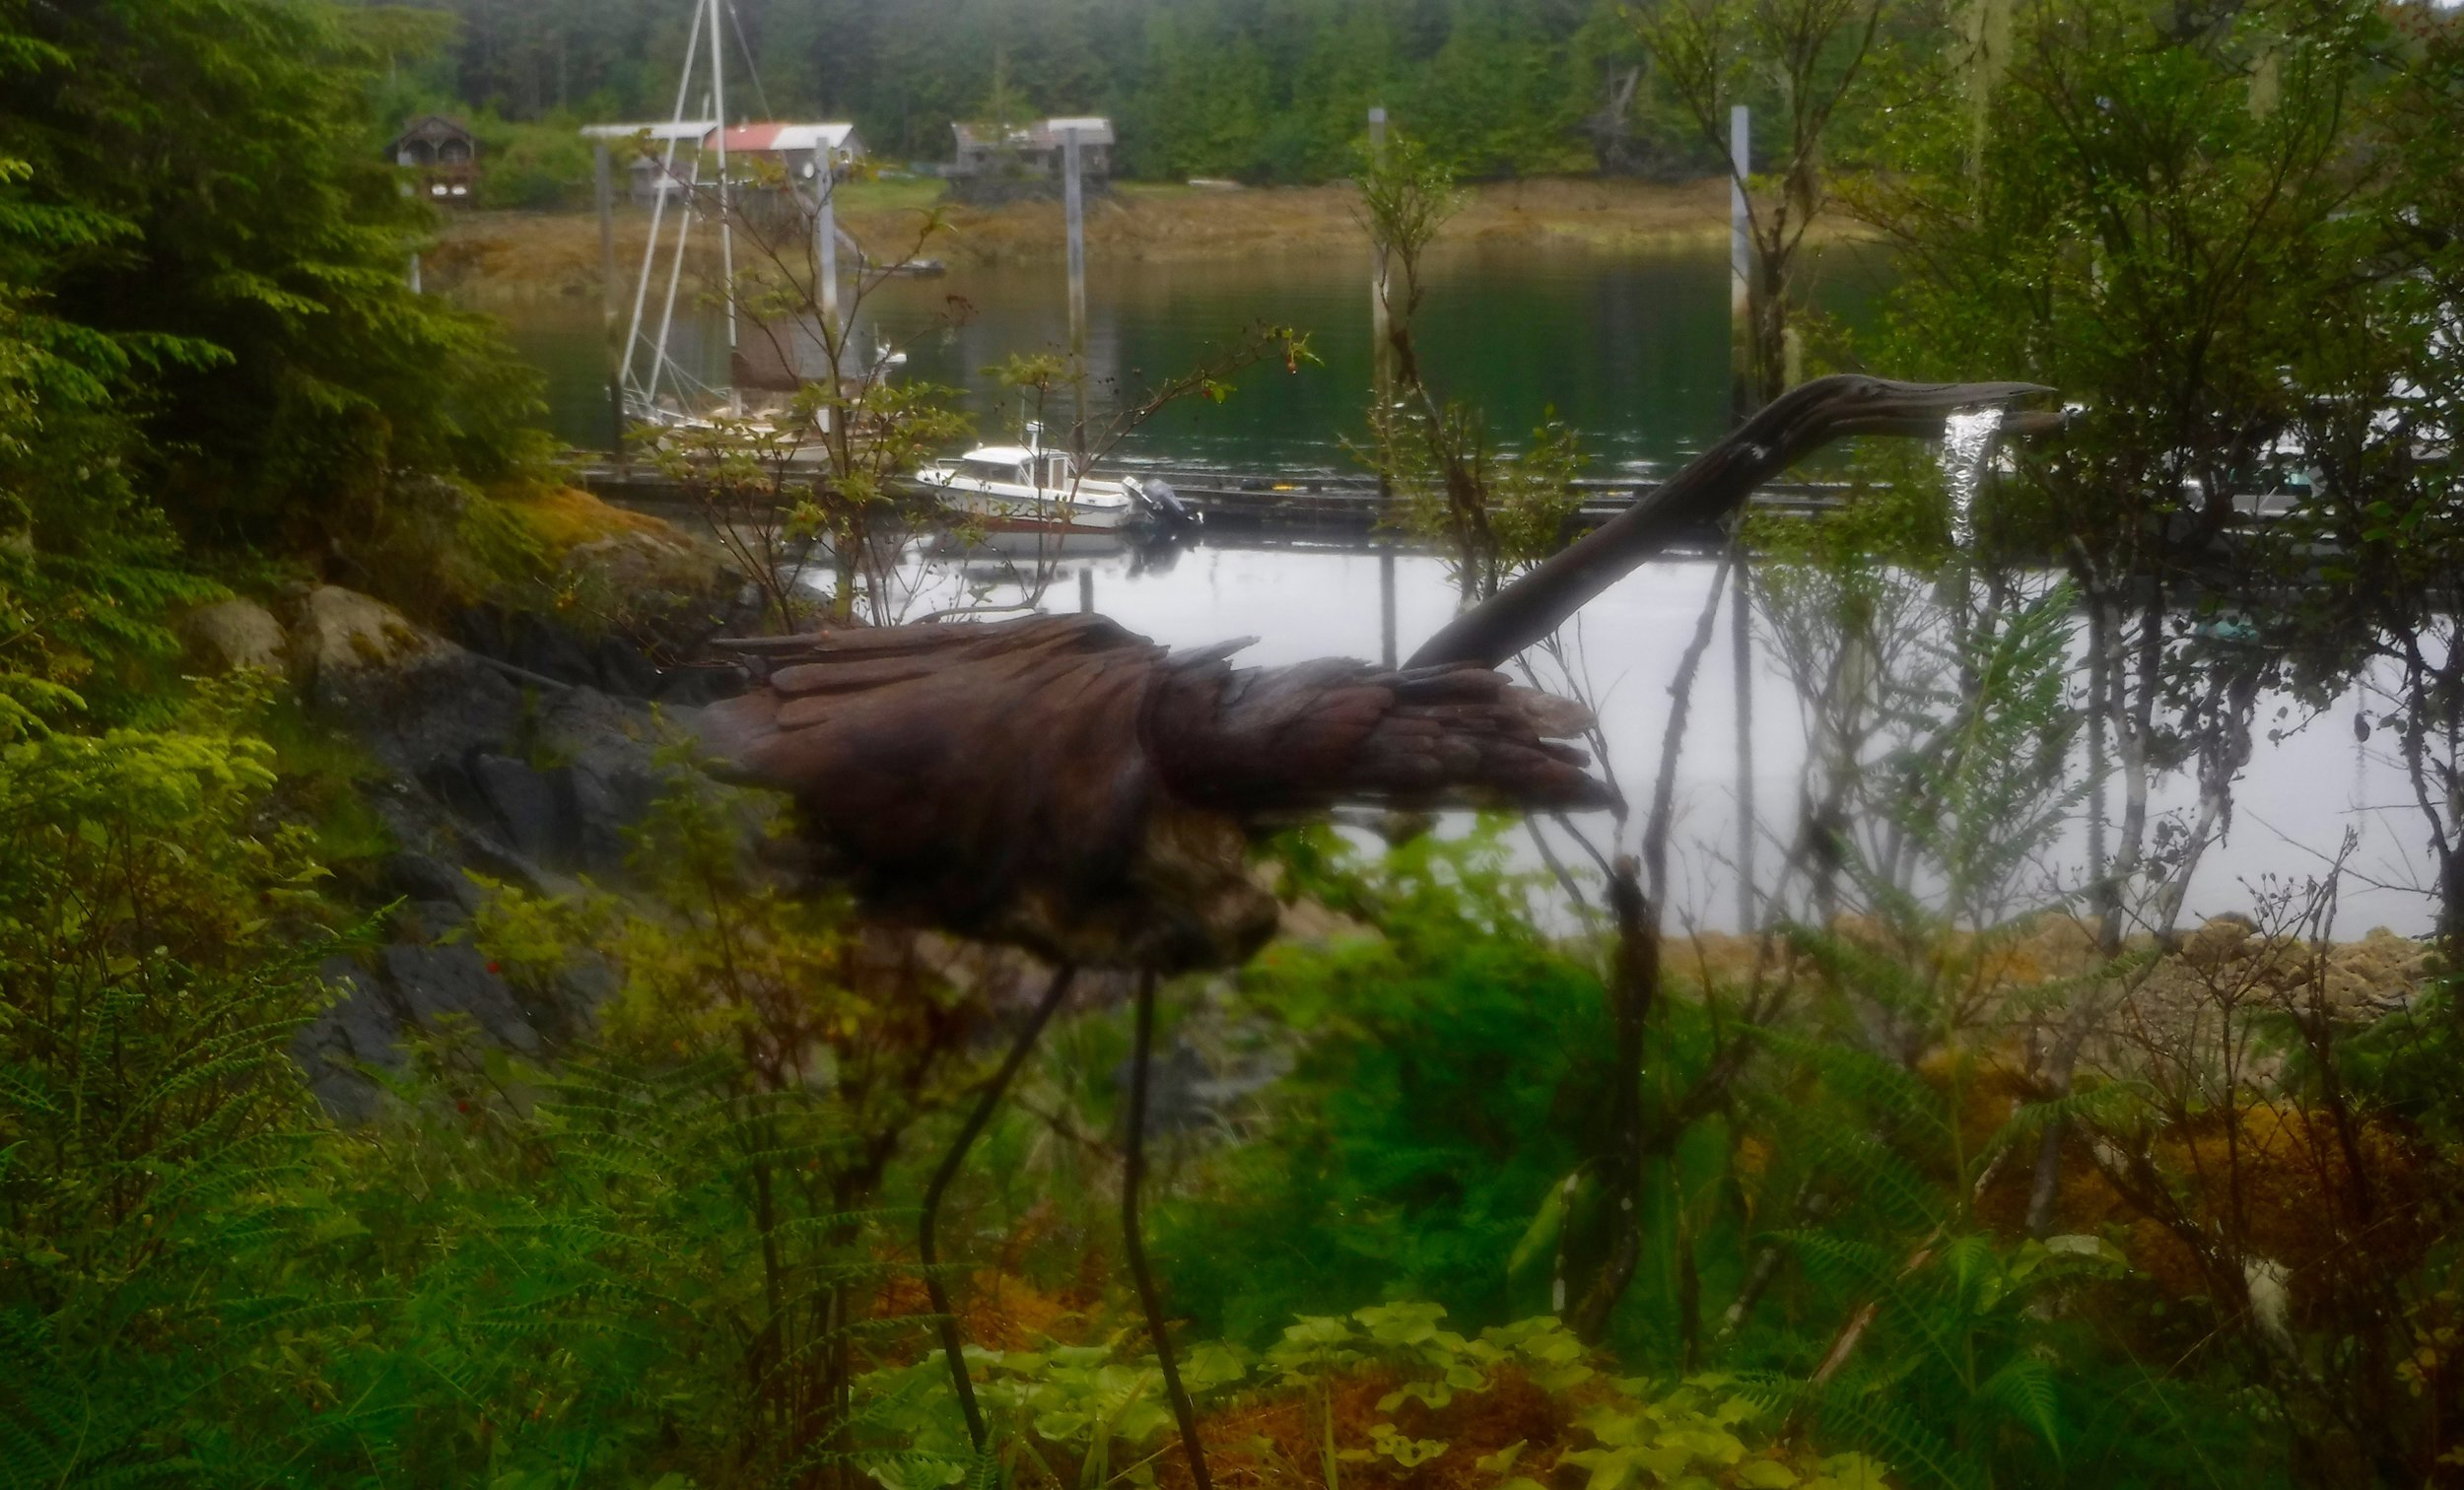 Neat sculpture of a Great blue heron. Made from drift wood